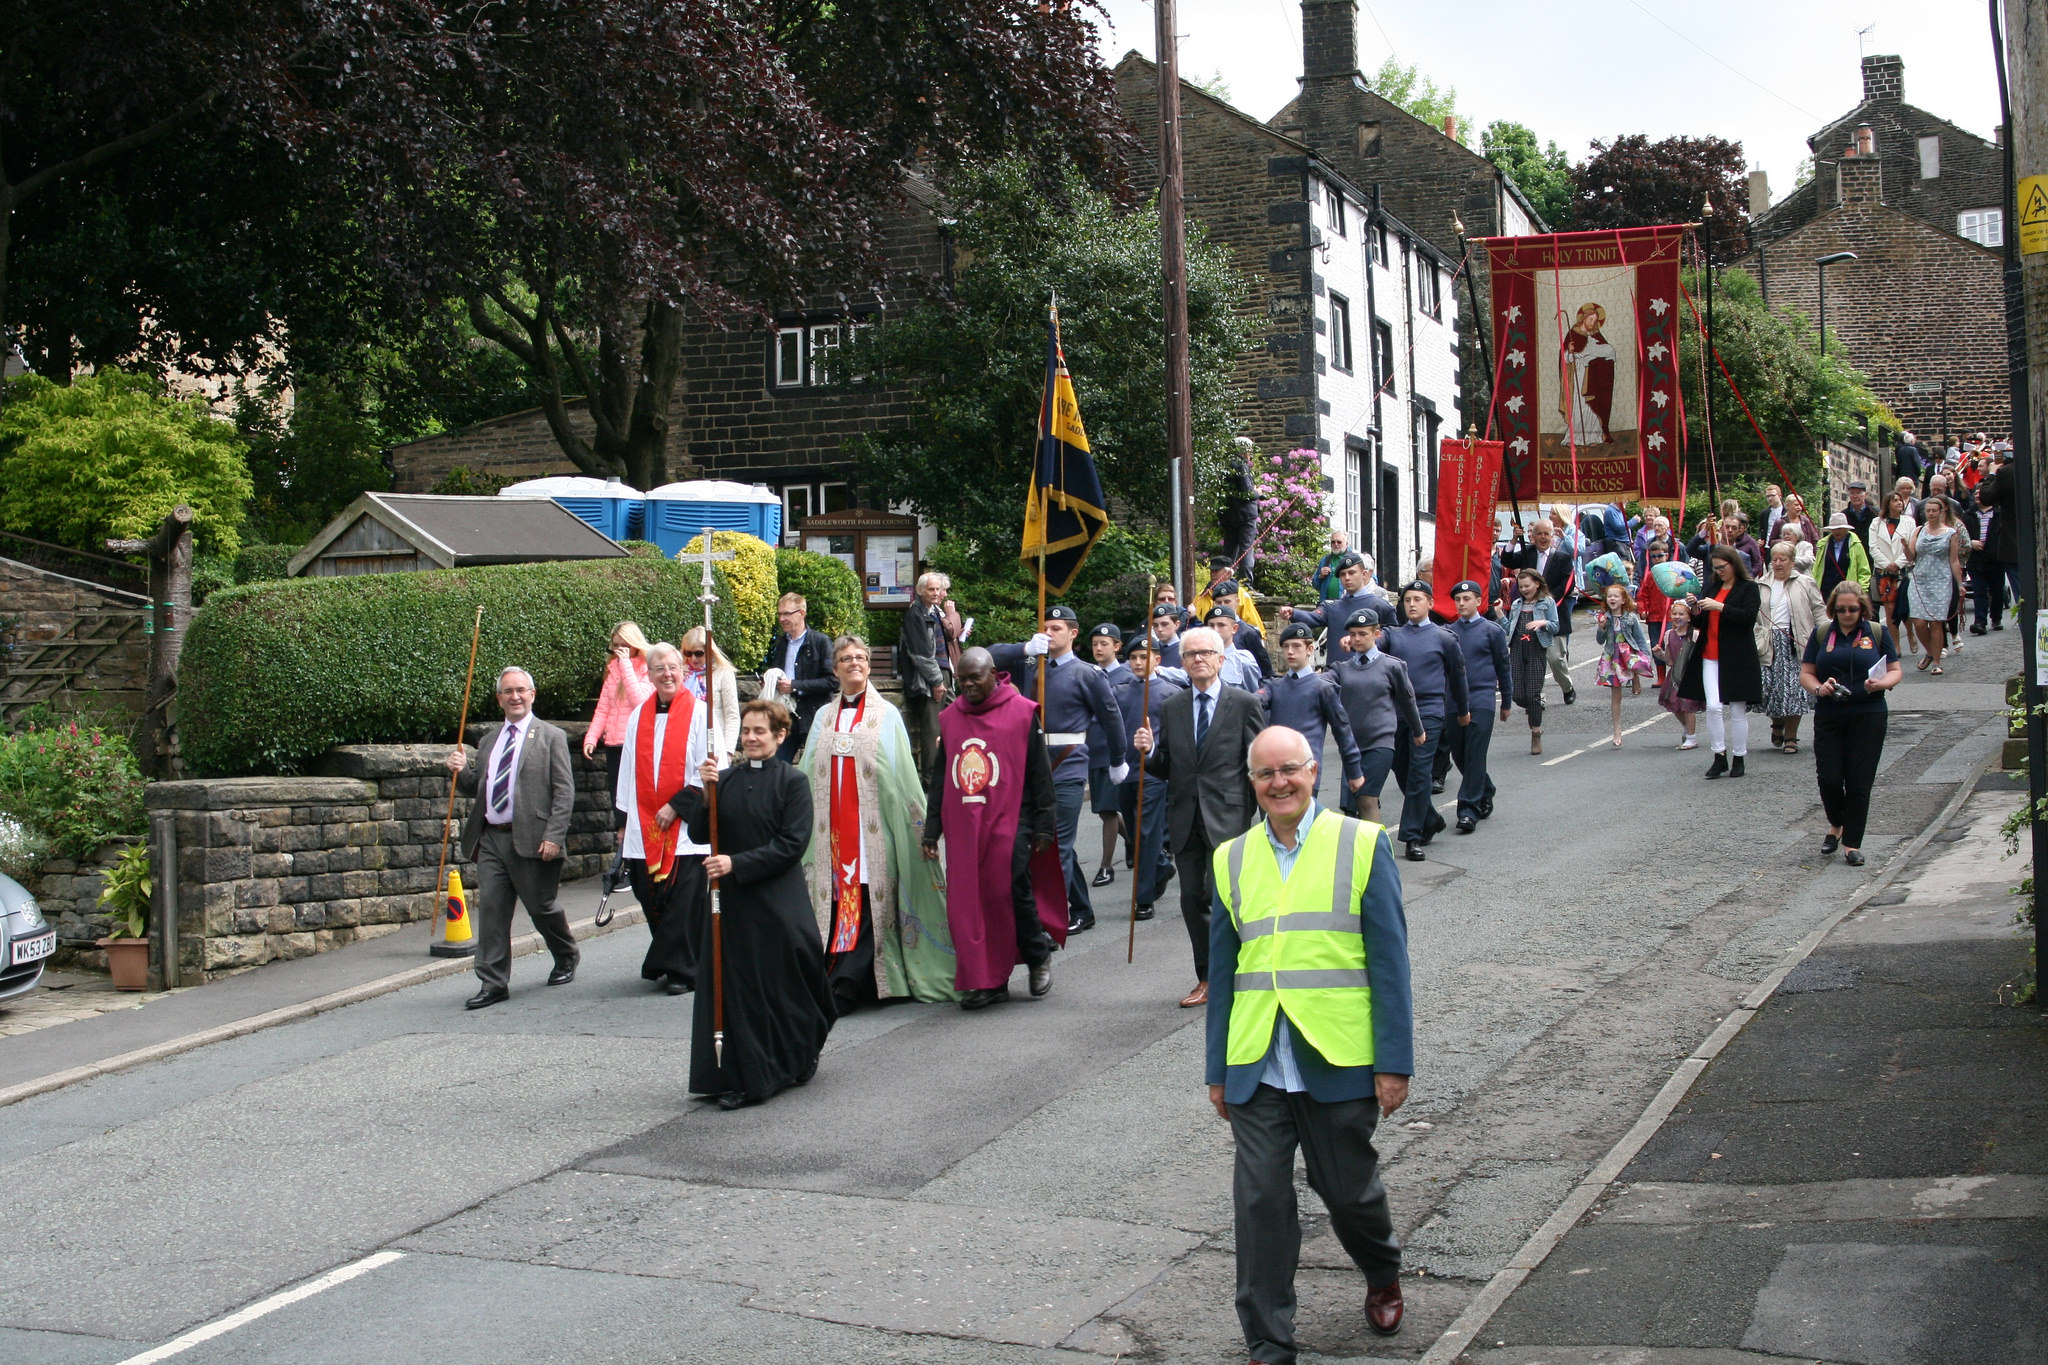 Procession down street for Whit walk